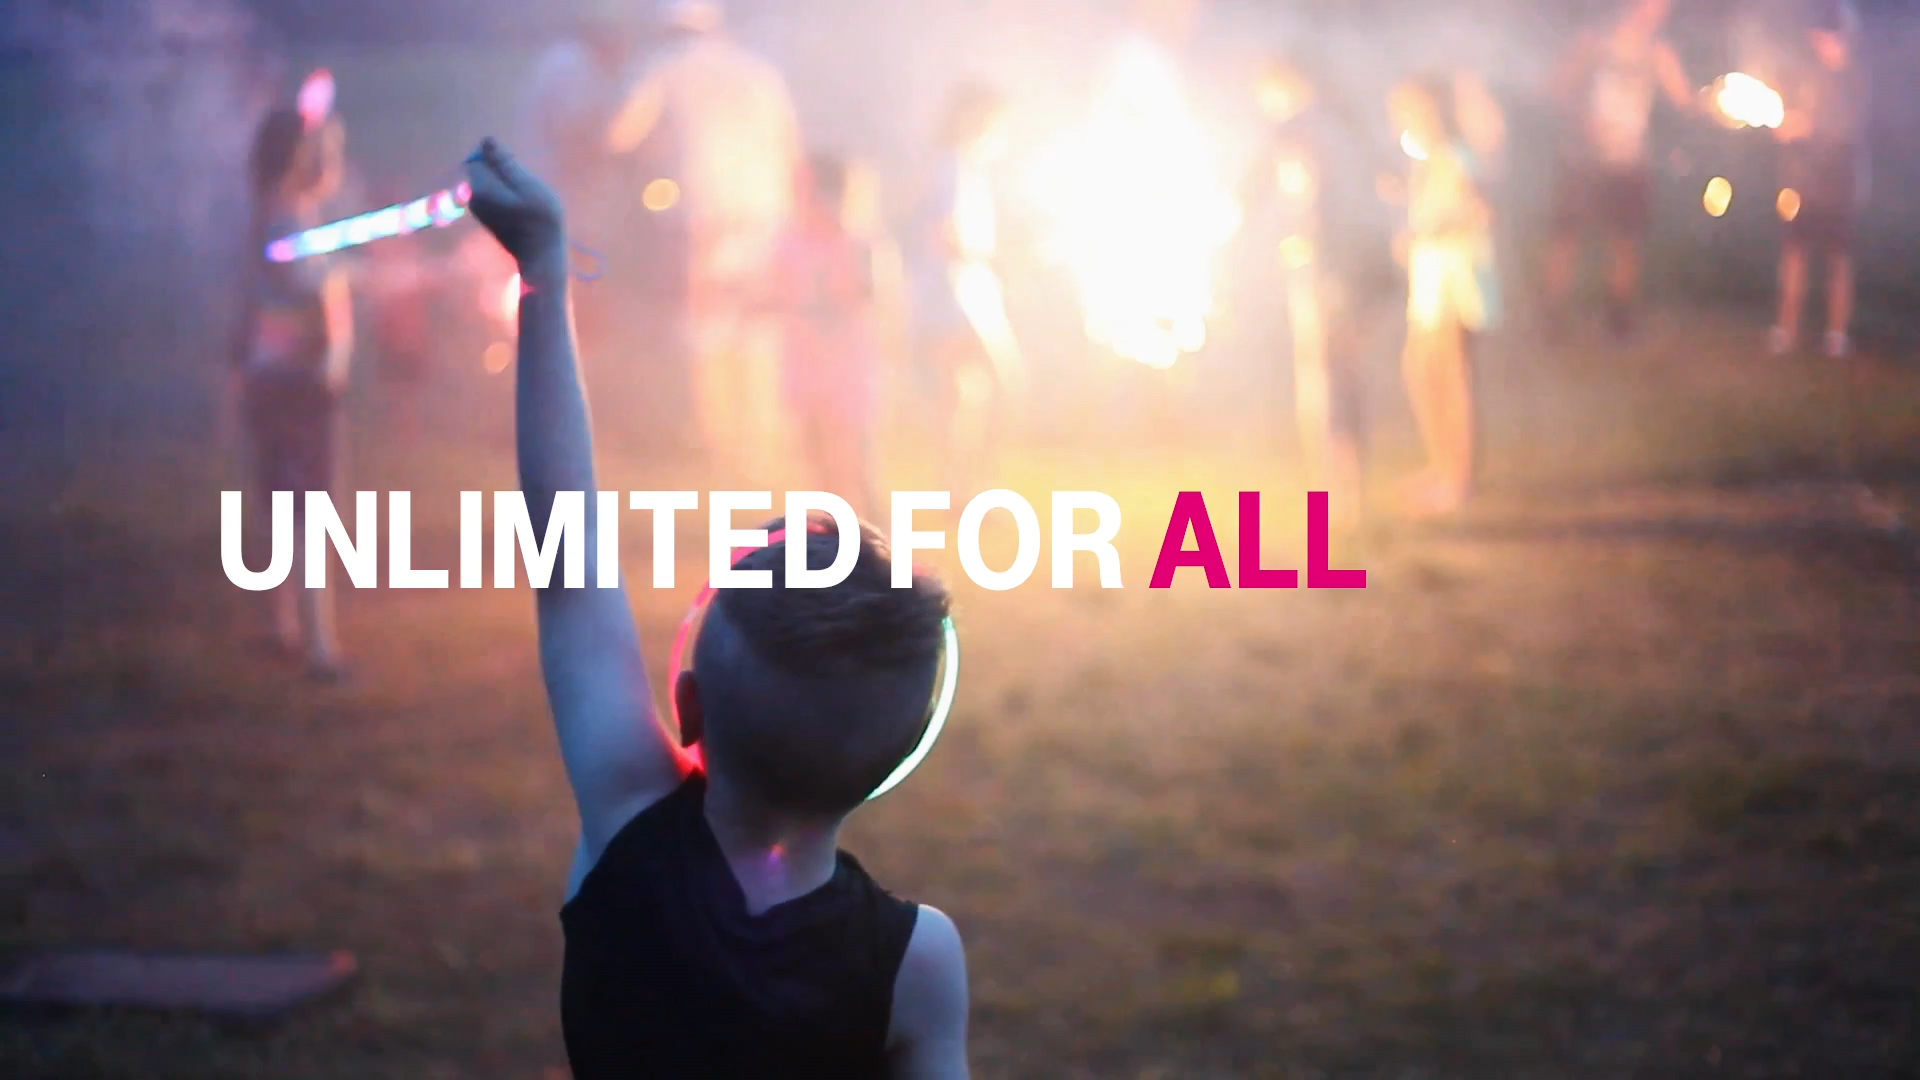 Unlimited For The Rest Of Us Starting at $30 Per Line - T-mobile